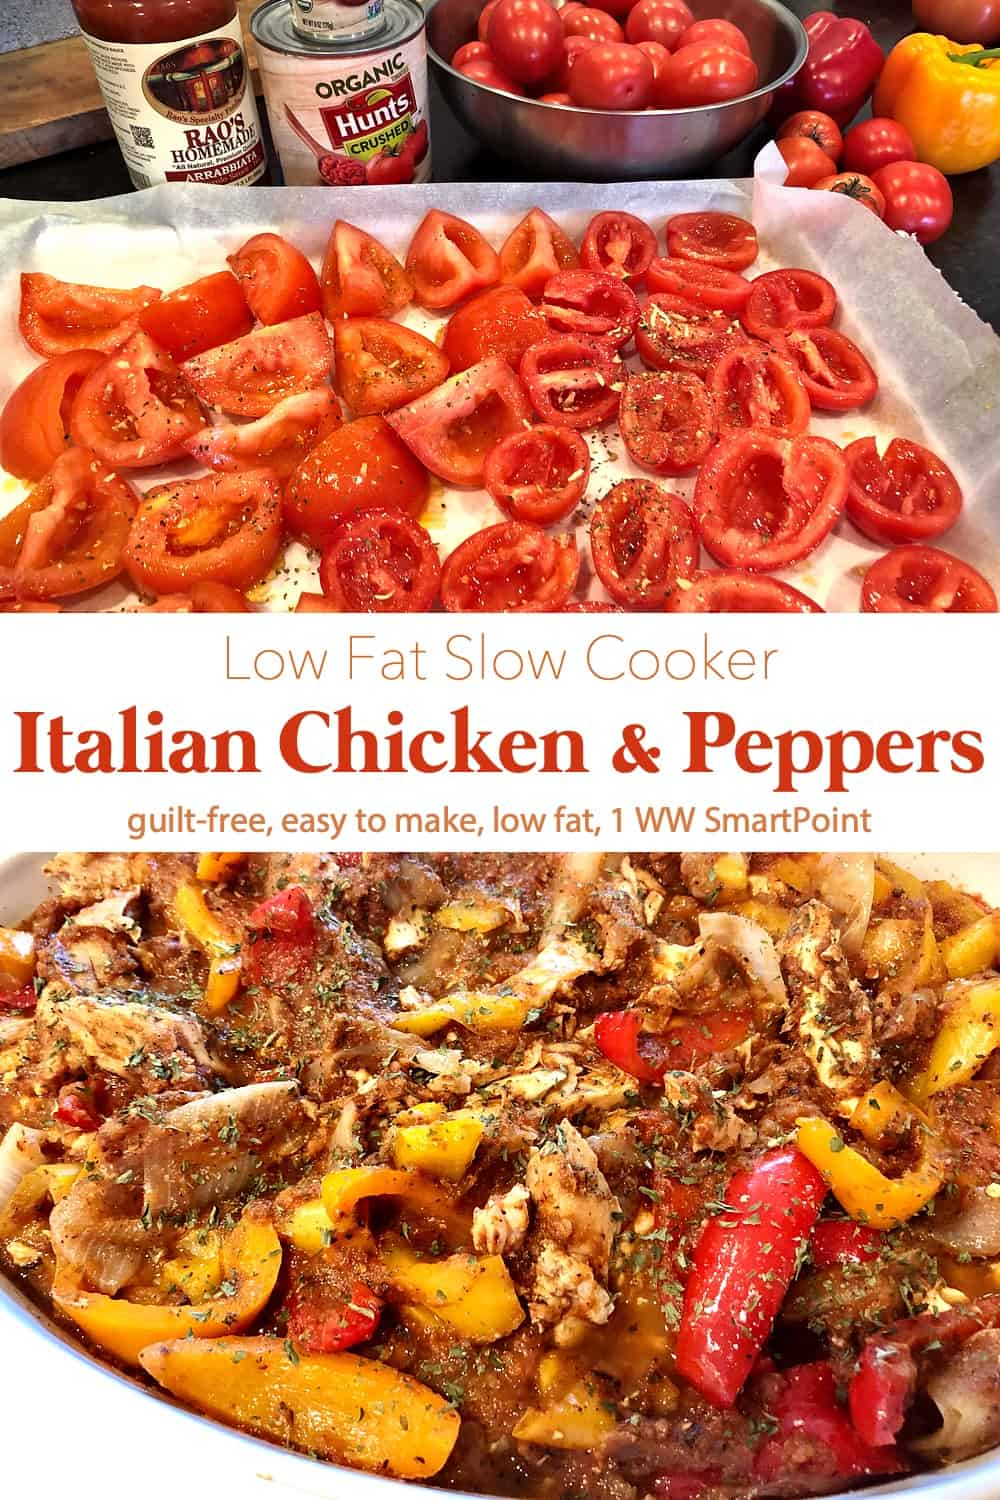 This easy low fat recipe for Slow Cooker Chicken & Peppers is a simple way to create a Low Point Weight Watchers family-friendly meal. #lowfatslowcookerchickenpeppers #lowfatchickenpeppers #slowcookerchickenpeppers #chickenpeppers #chicken #easyhealthyrecipes #slowcooker #crockpot